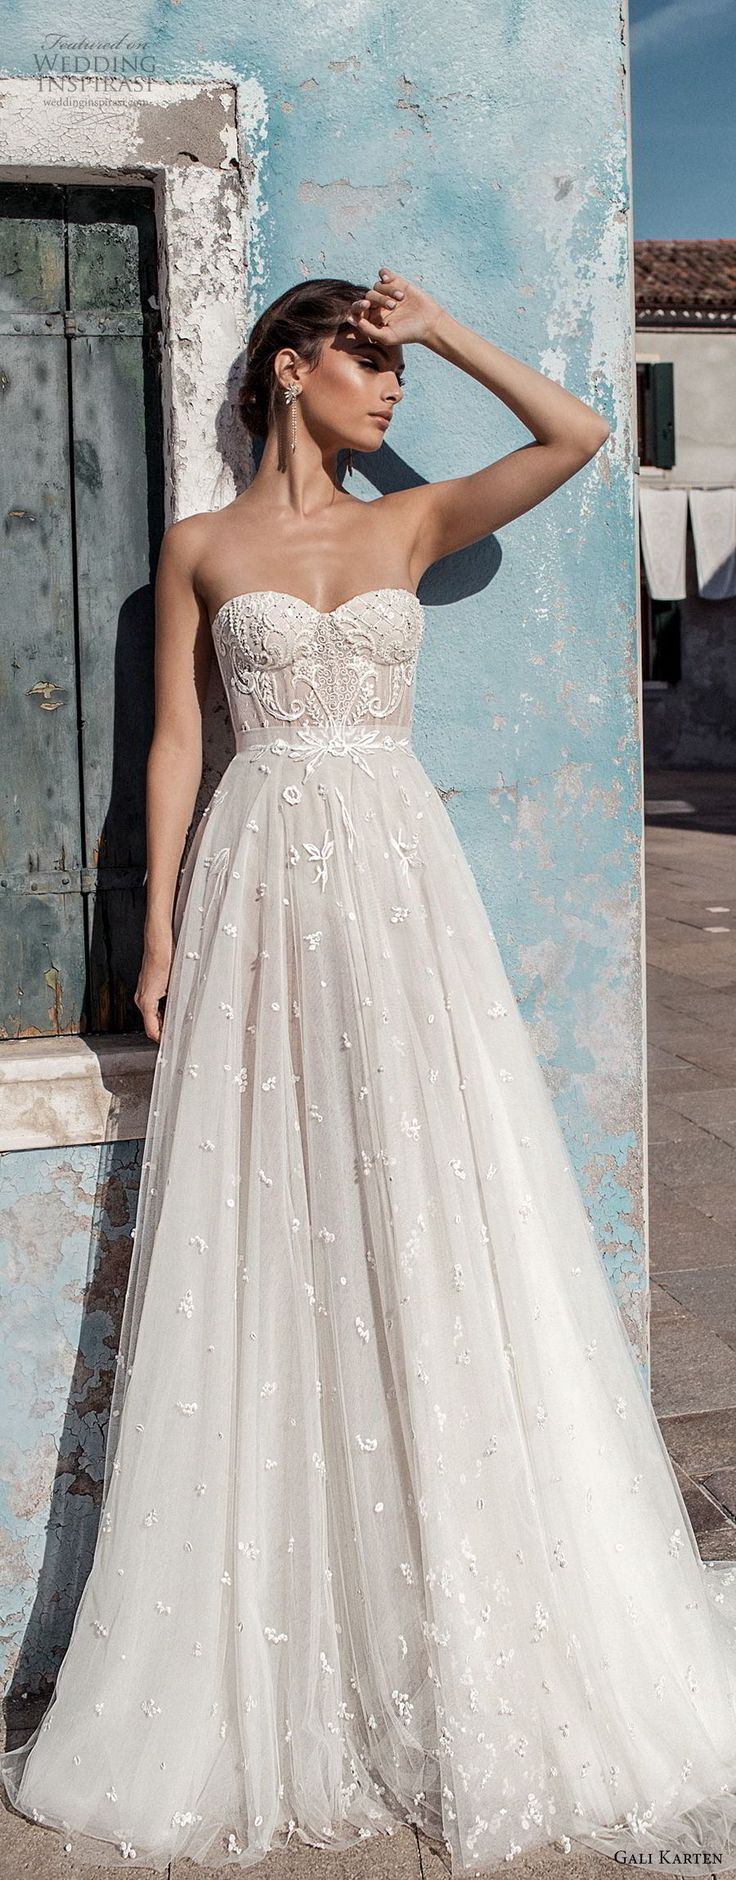 6378 best Wedding images on Pinterest | Wedding dressses, Marriage ...